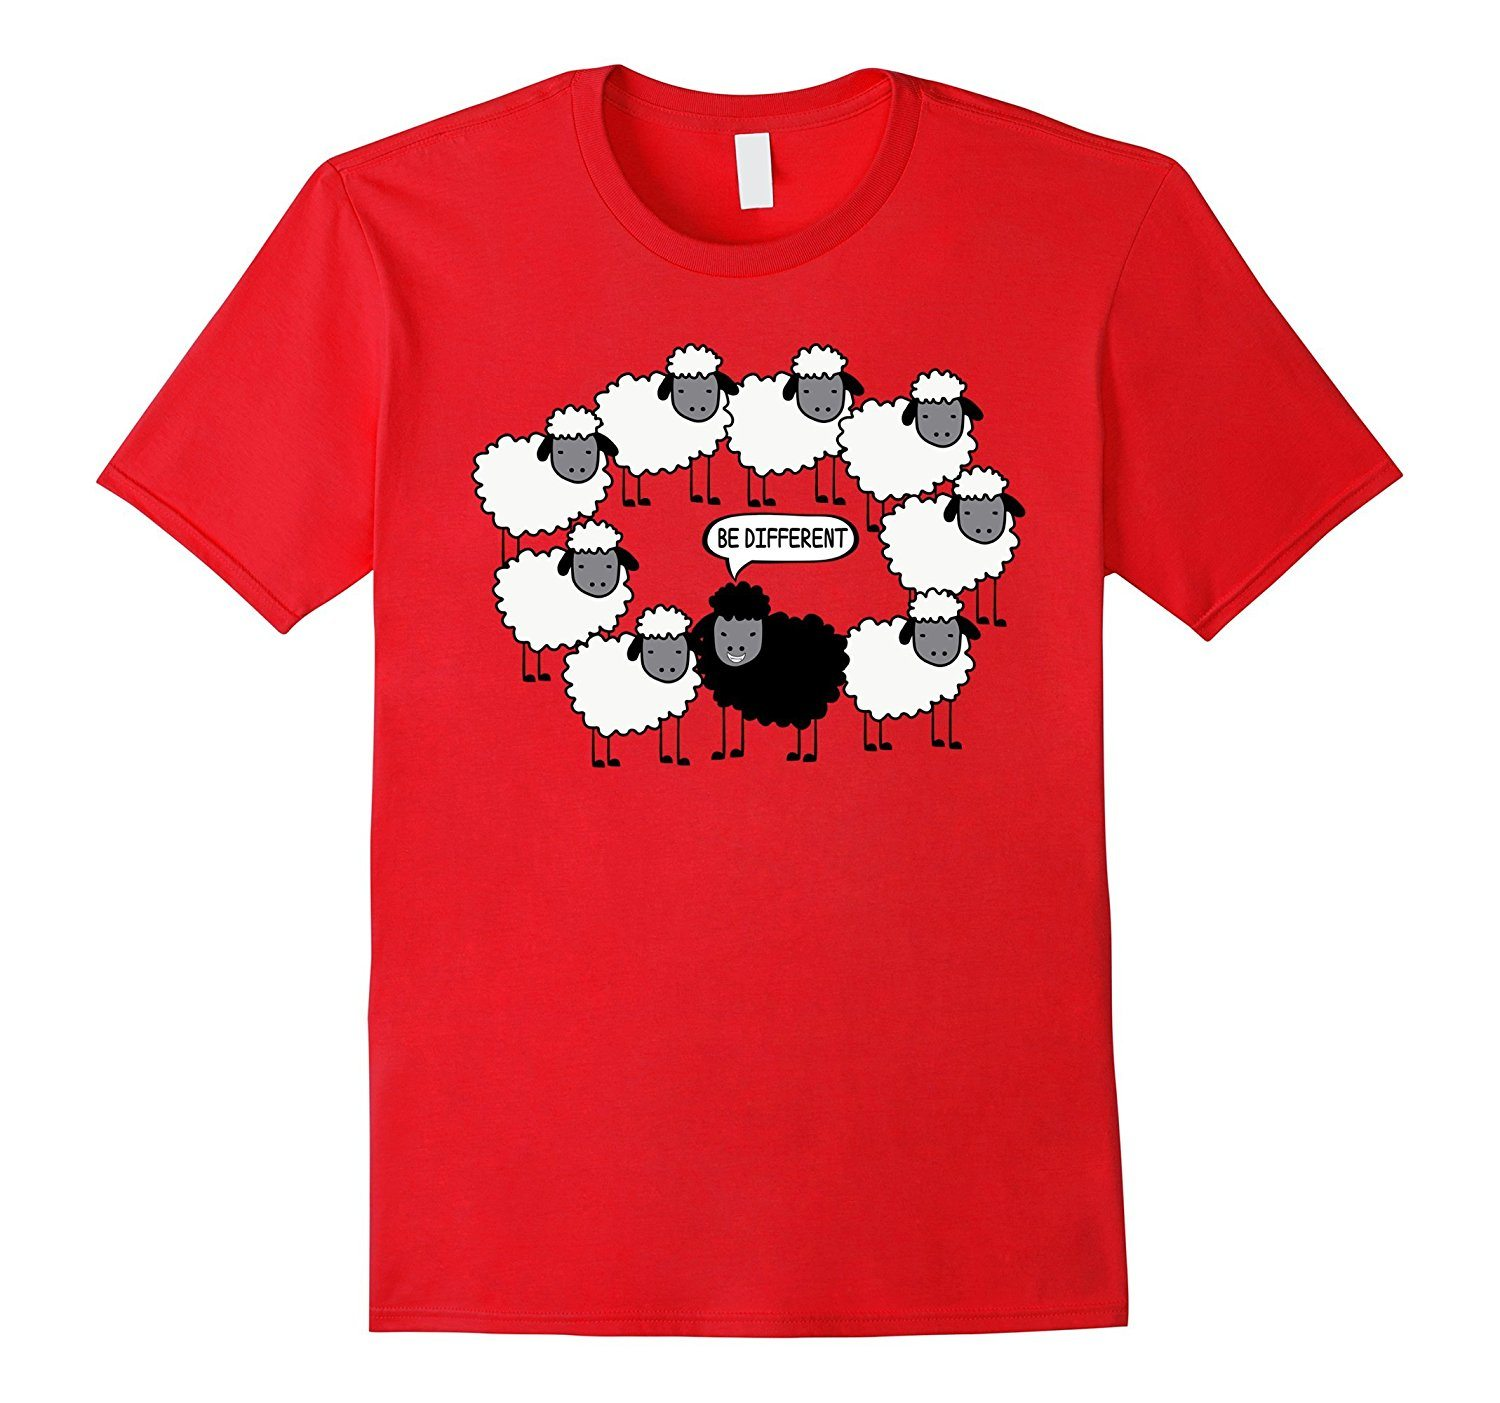 Cool Be Different Funny Tshirt Black Sheep Family